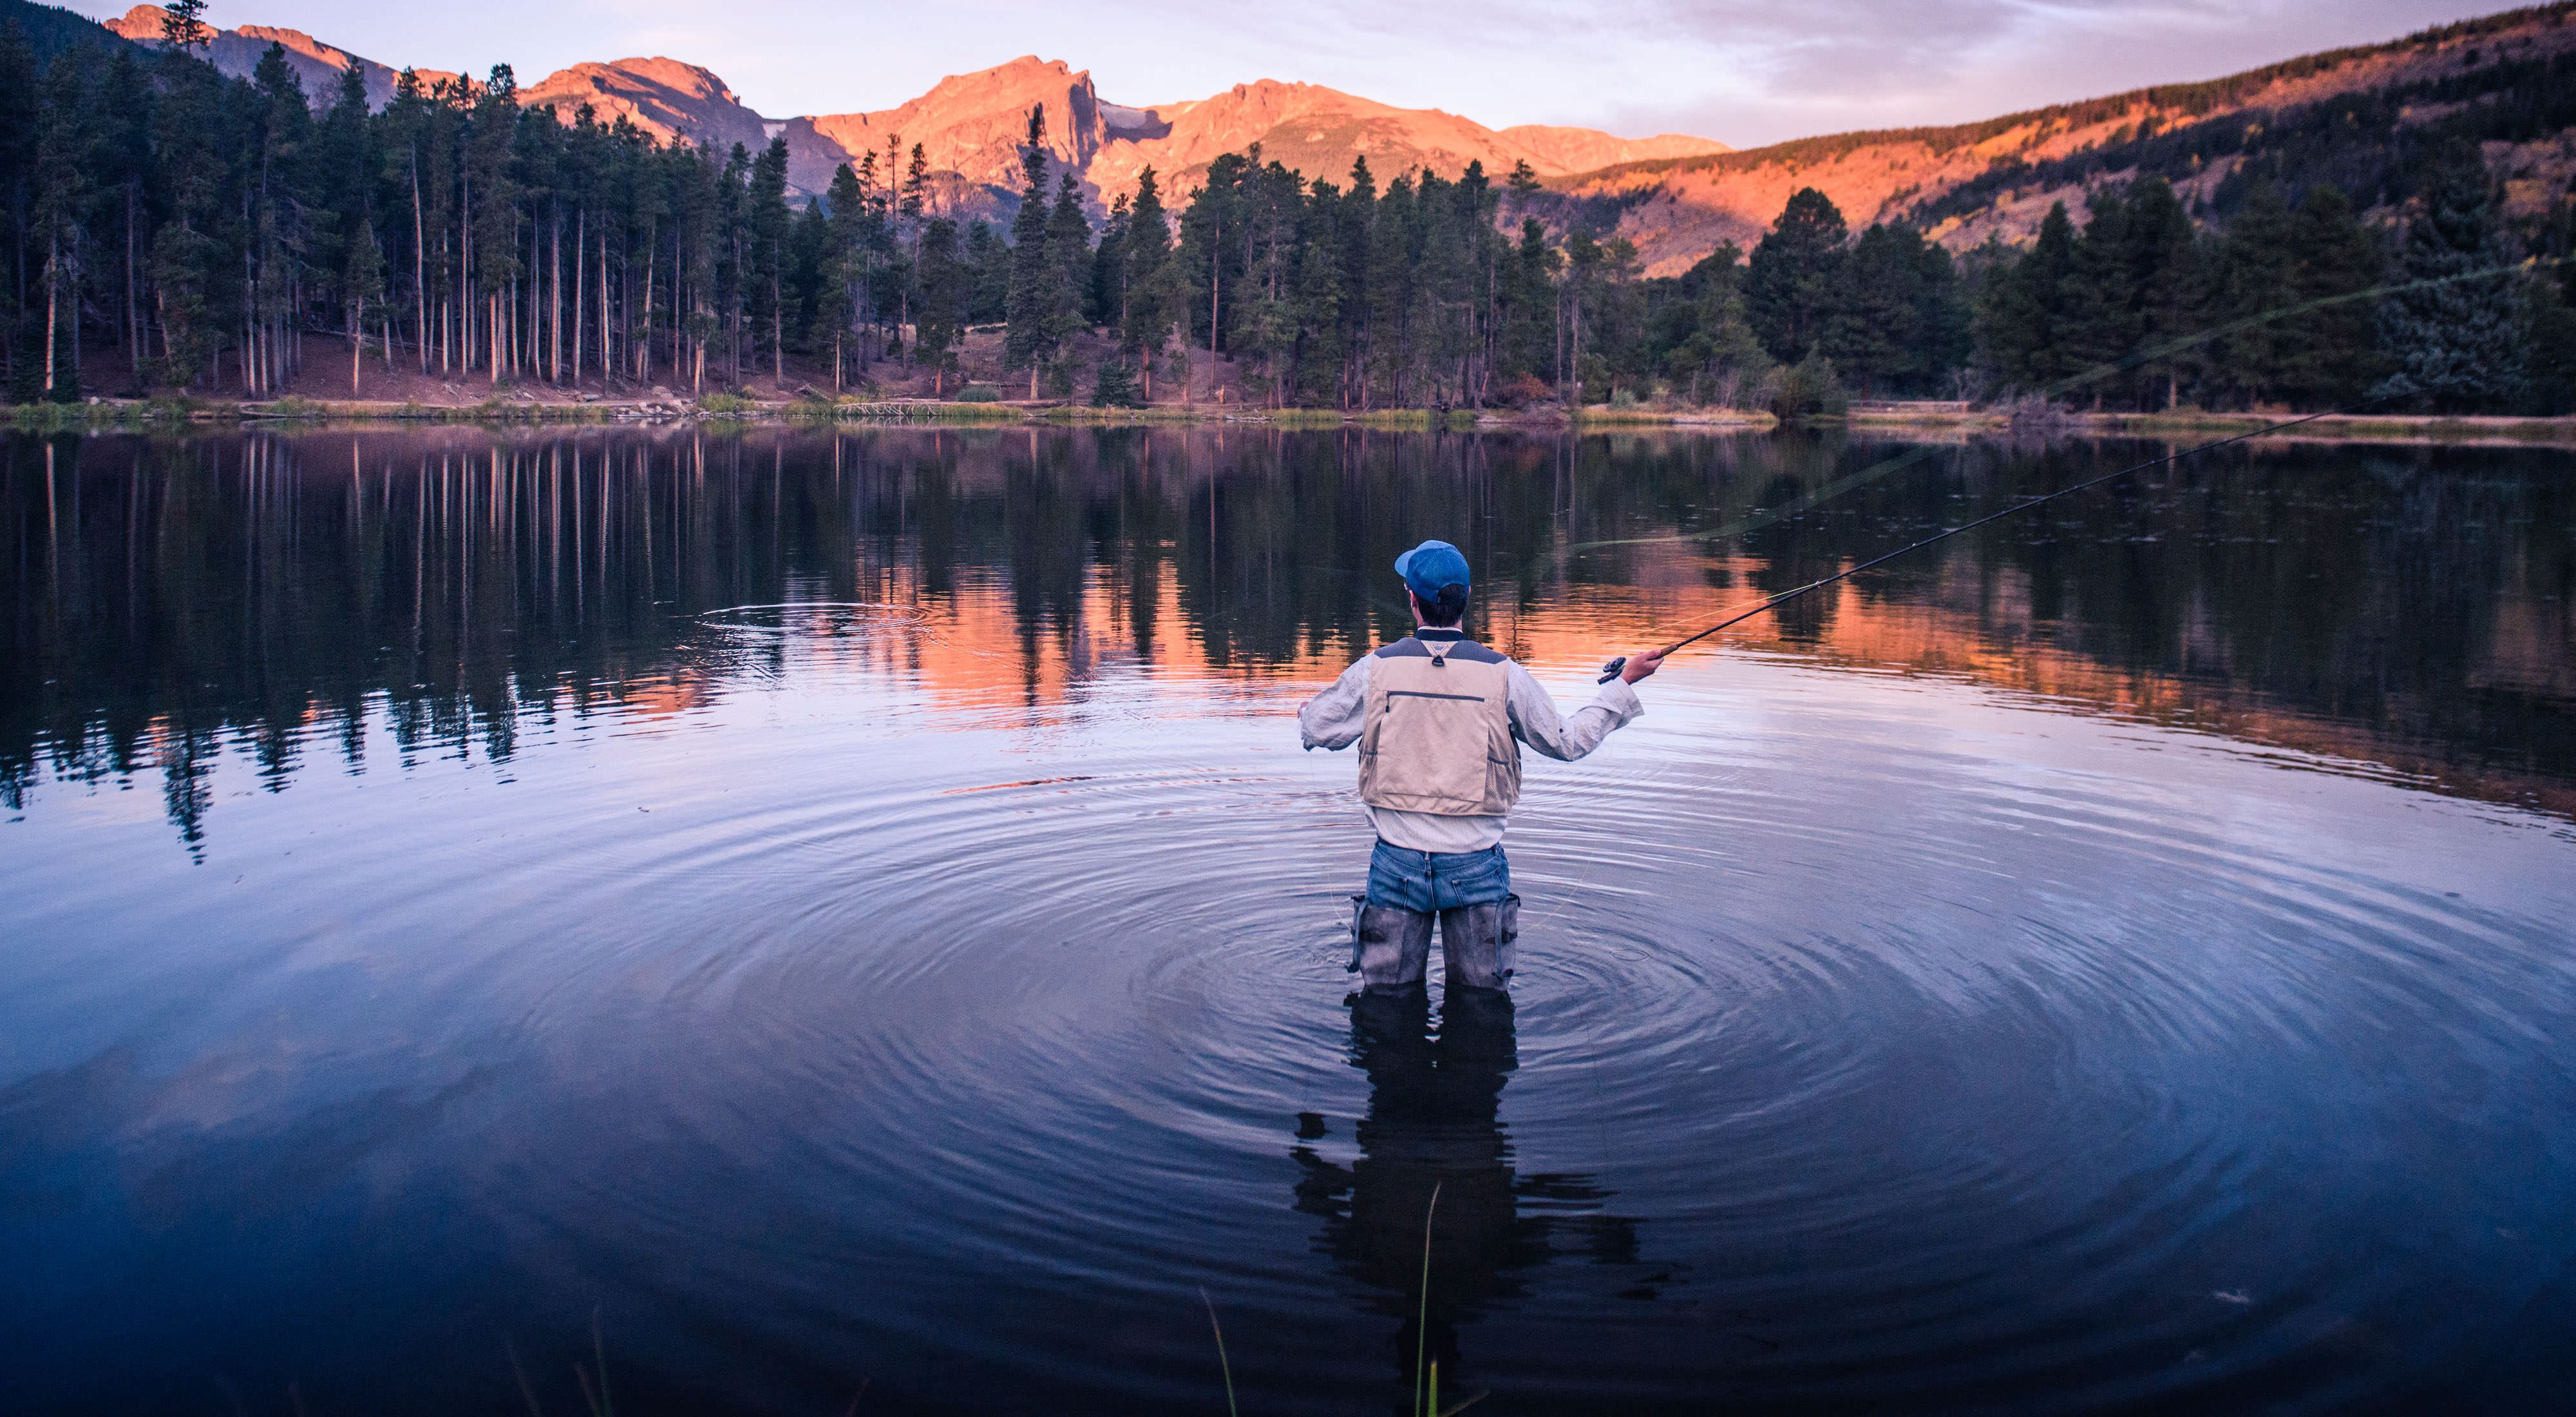 At more than 8,600 feet above sea level, Rocky Mountain National Park's Sprague Lake is a popular spot for fly-fishing and hiking.